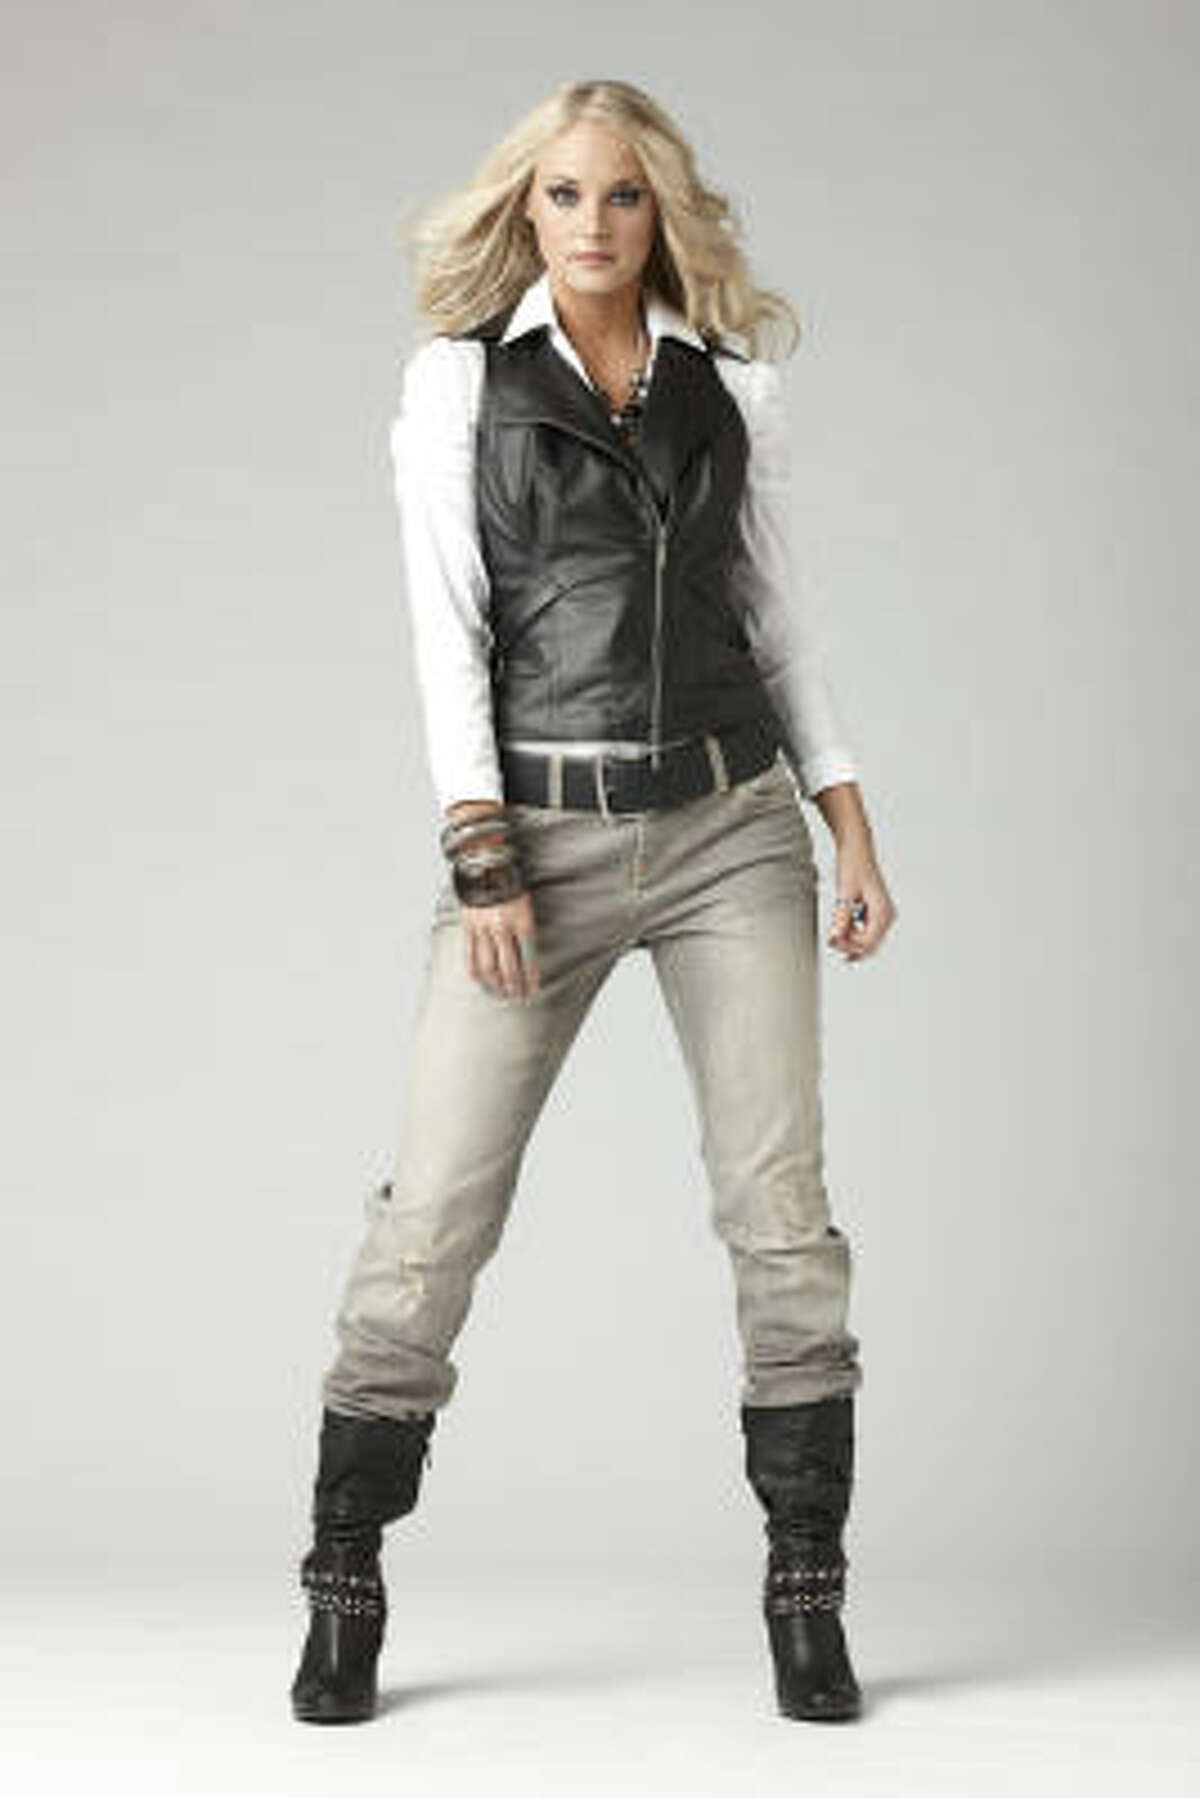 Be an urban cowgirl in this Bisou Bisou motorcycle vest, $49.99; woven blouse, $24.99; and gray denim, $19.99. At JCPenney stores and www.jcp.com